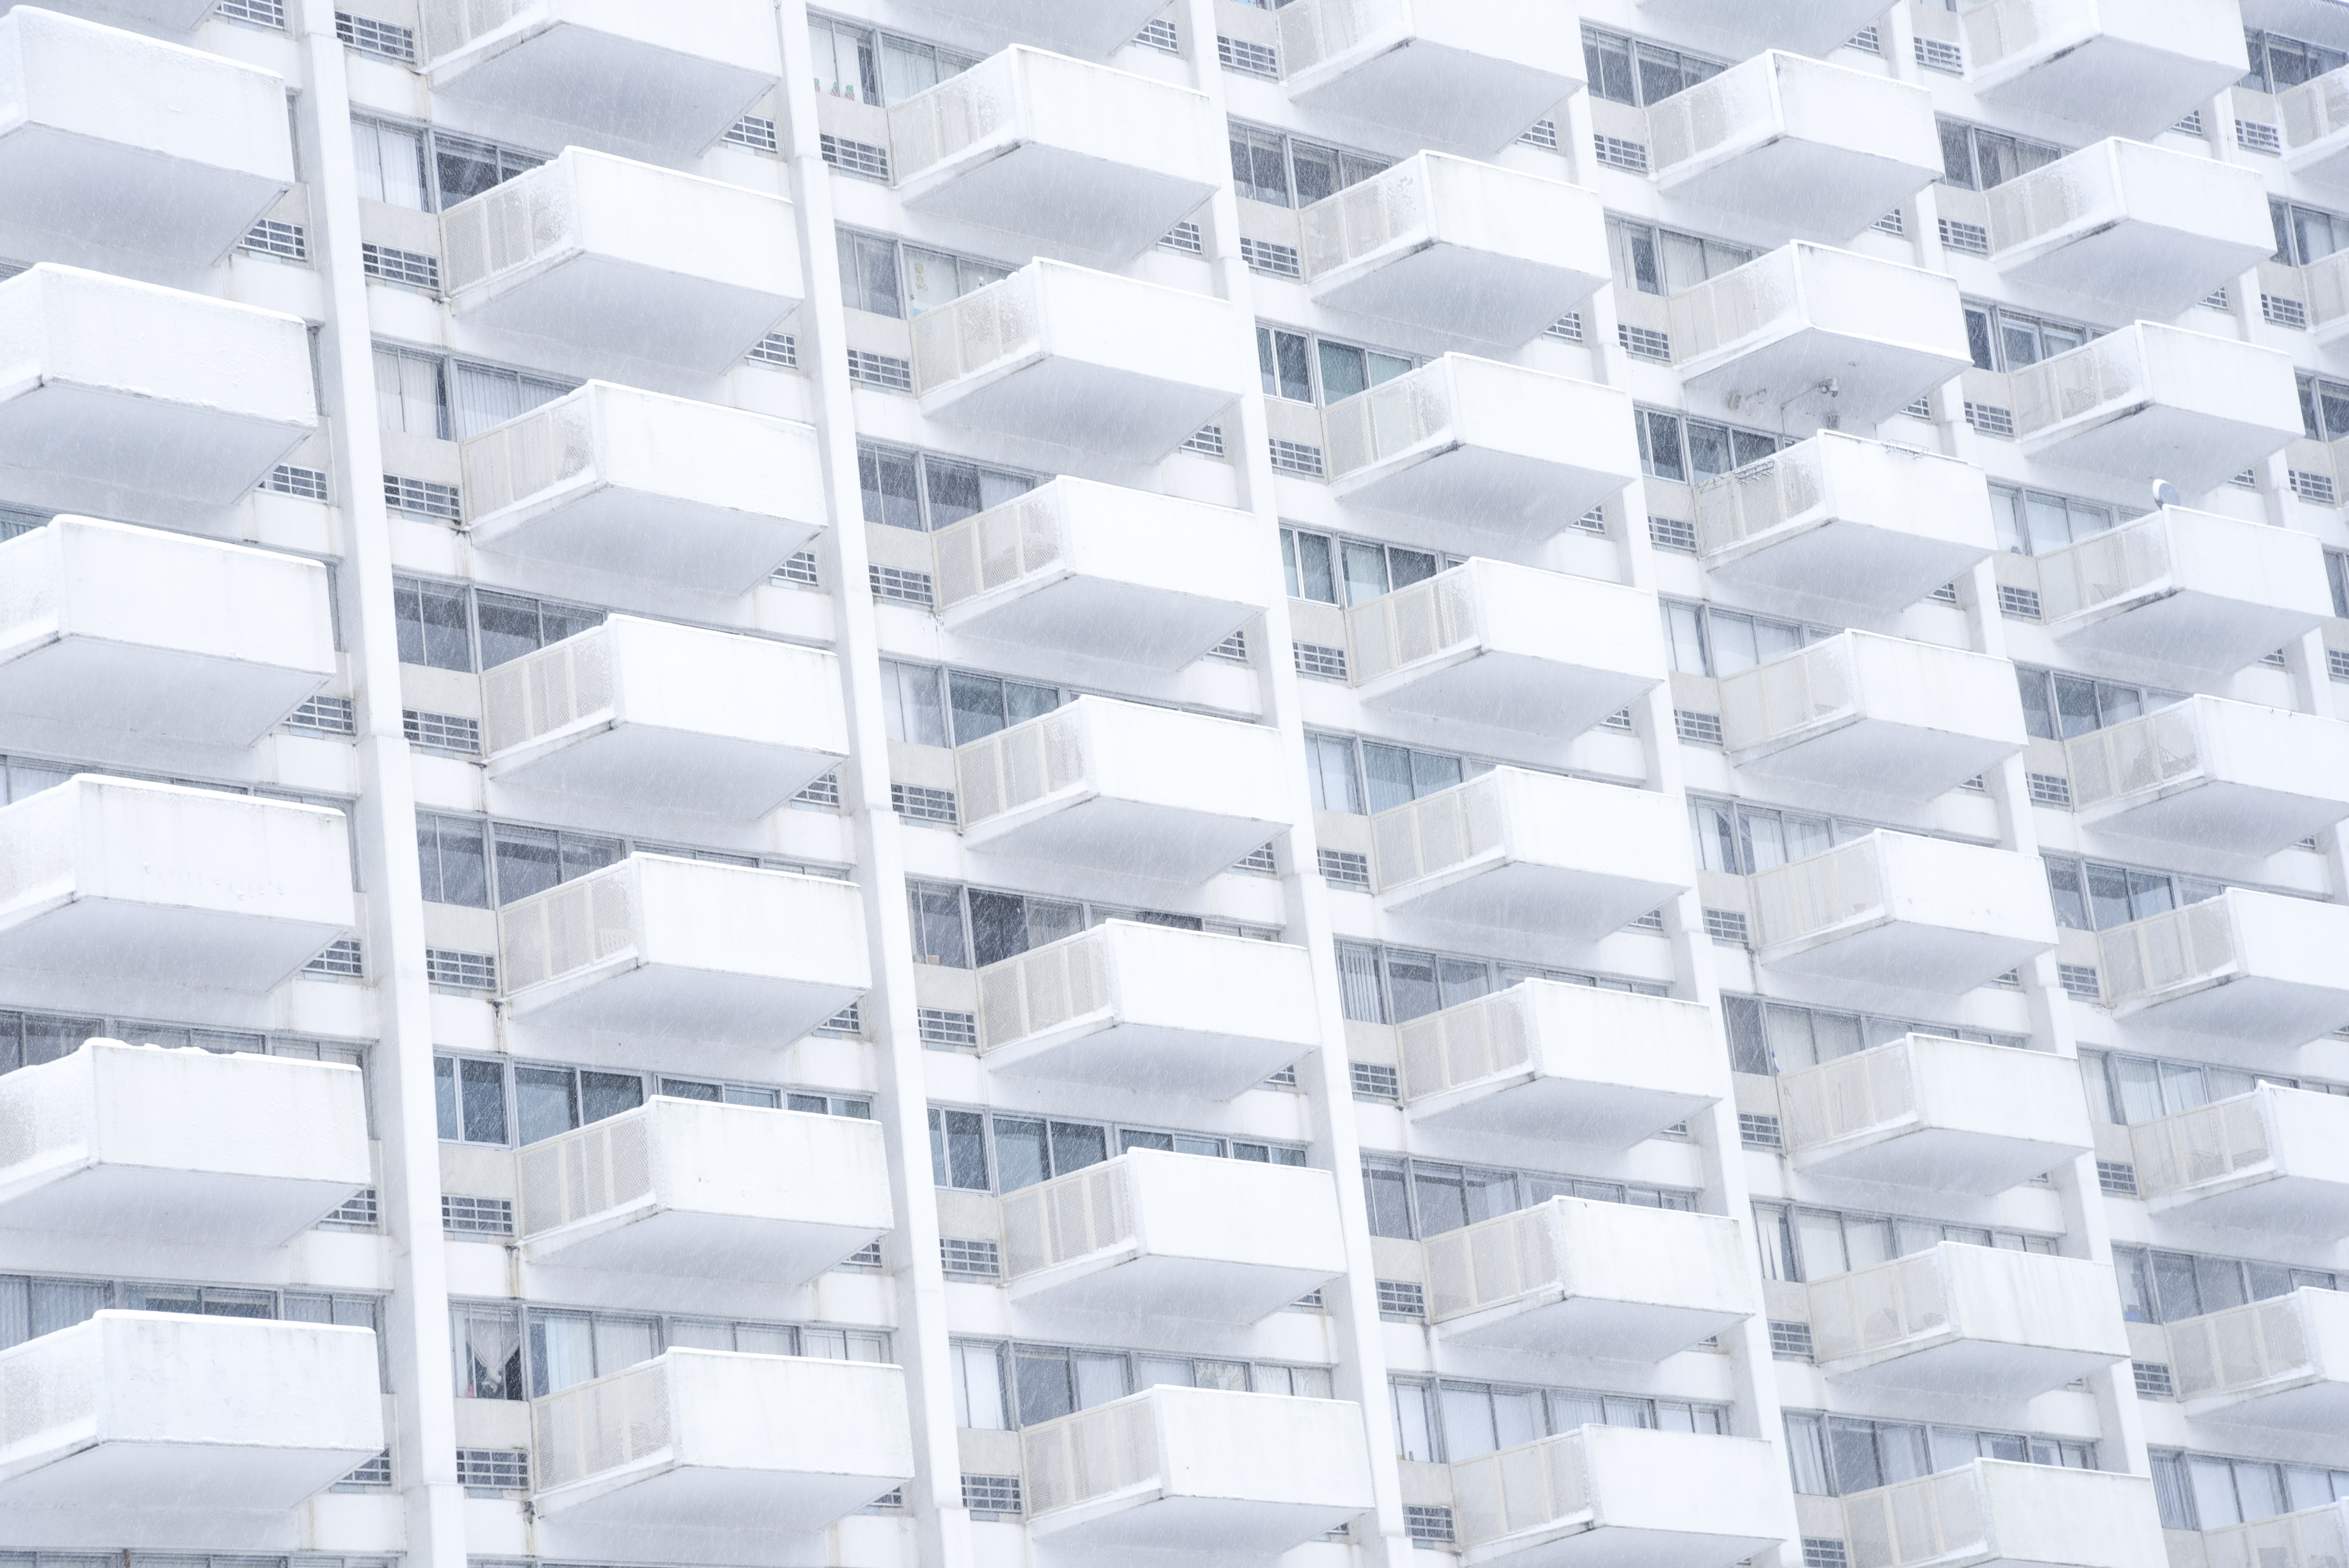 A stern white building facade with identical balconies